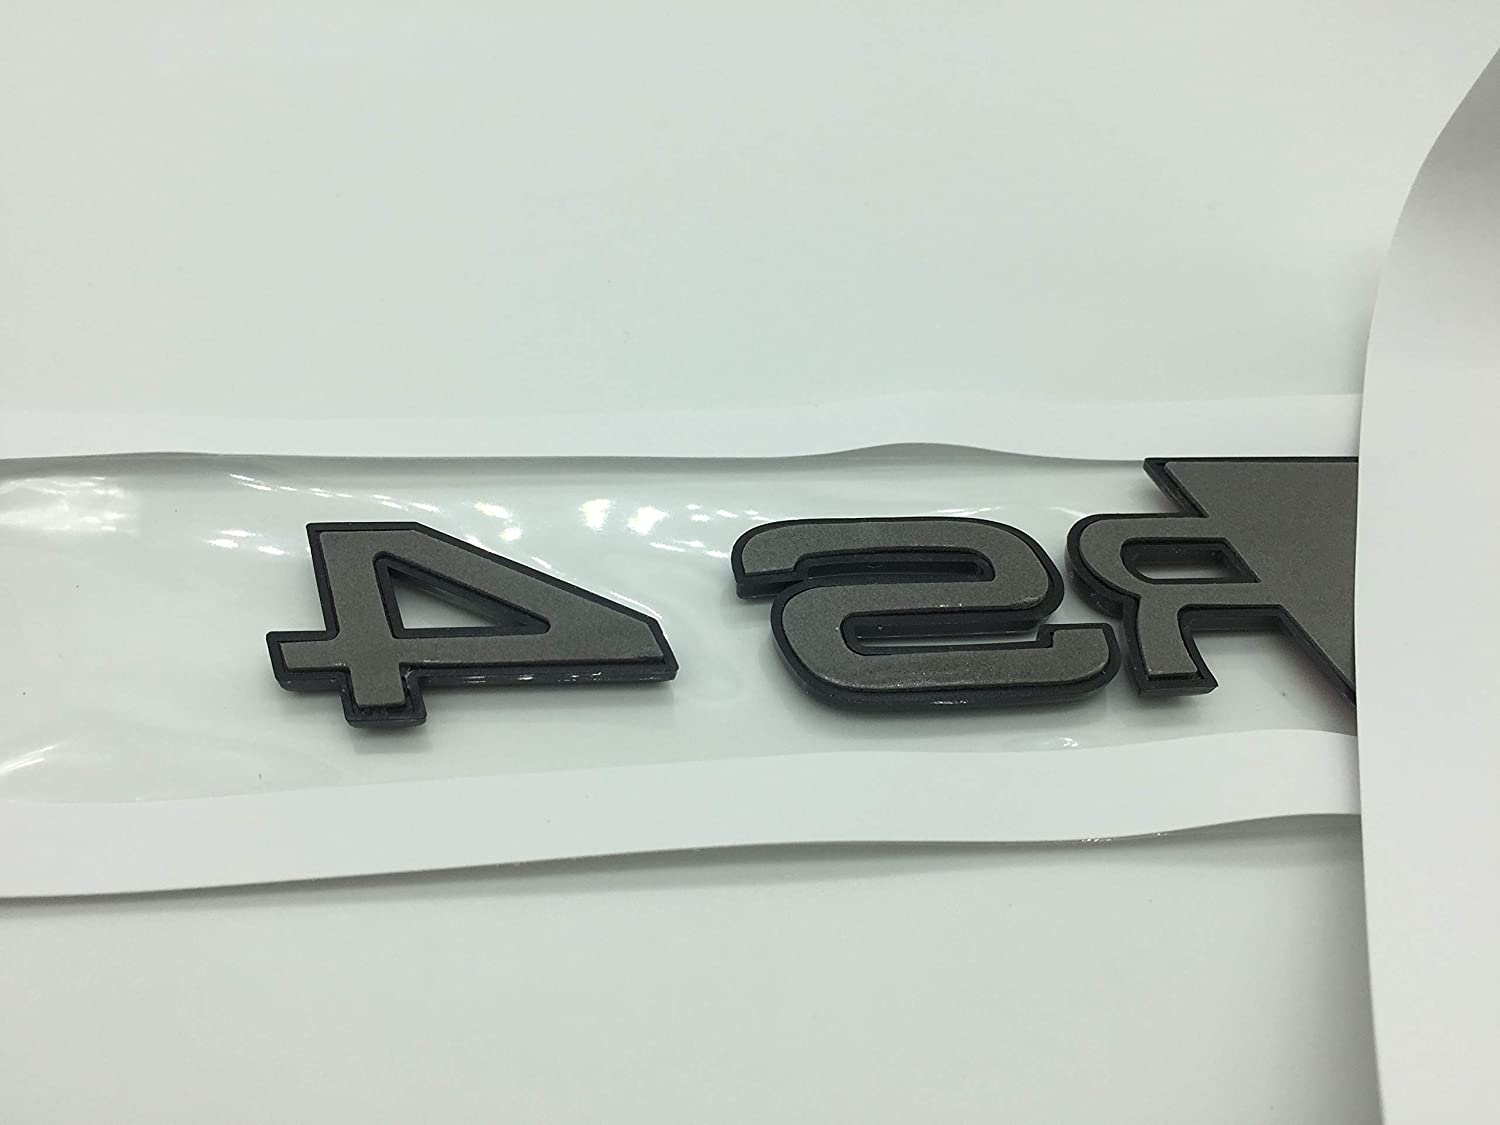 RS3 OEM ABS Nameplate compatible for Audi RS 3 4 5 6 7 8 Rs3 RS4 Rs5 Rs6 Rs7 Rs8 Gloss Black Emblem 3D Trunk Logo Badge Compact